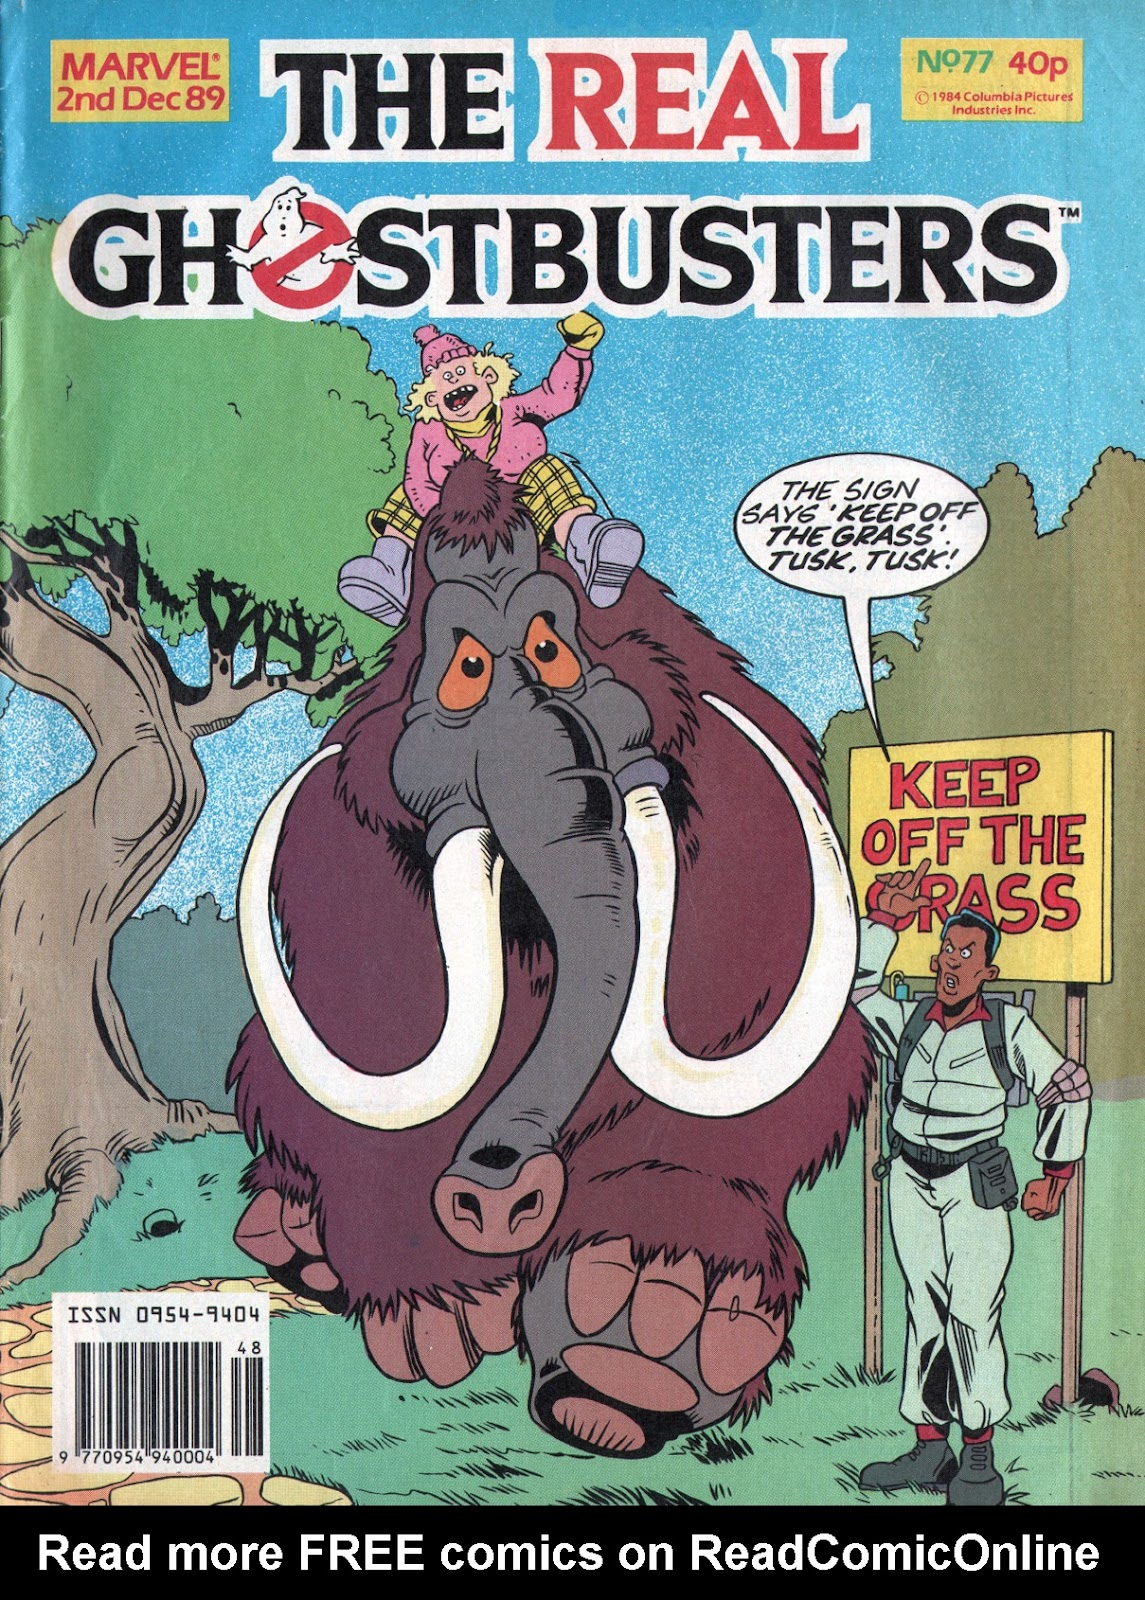 The Real Ghostbusters 77 Page 1